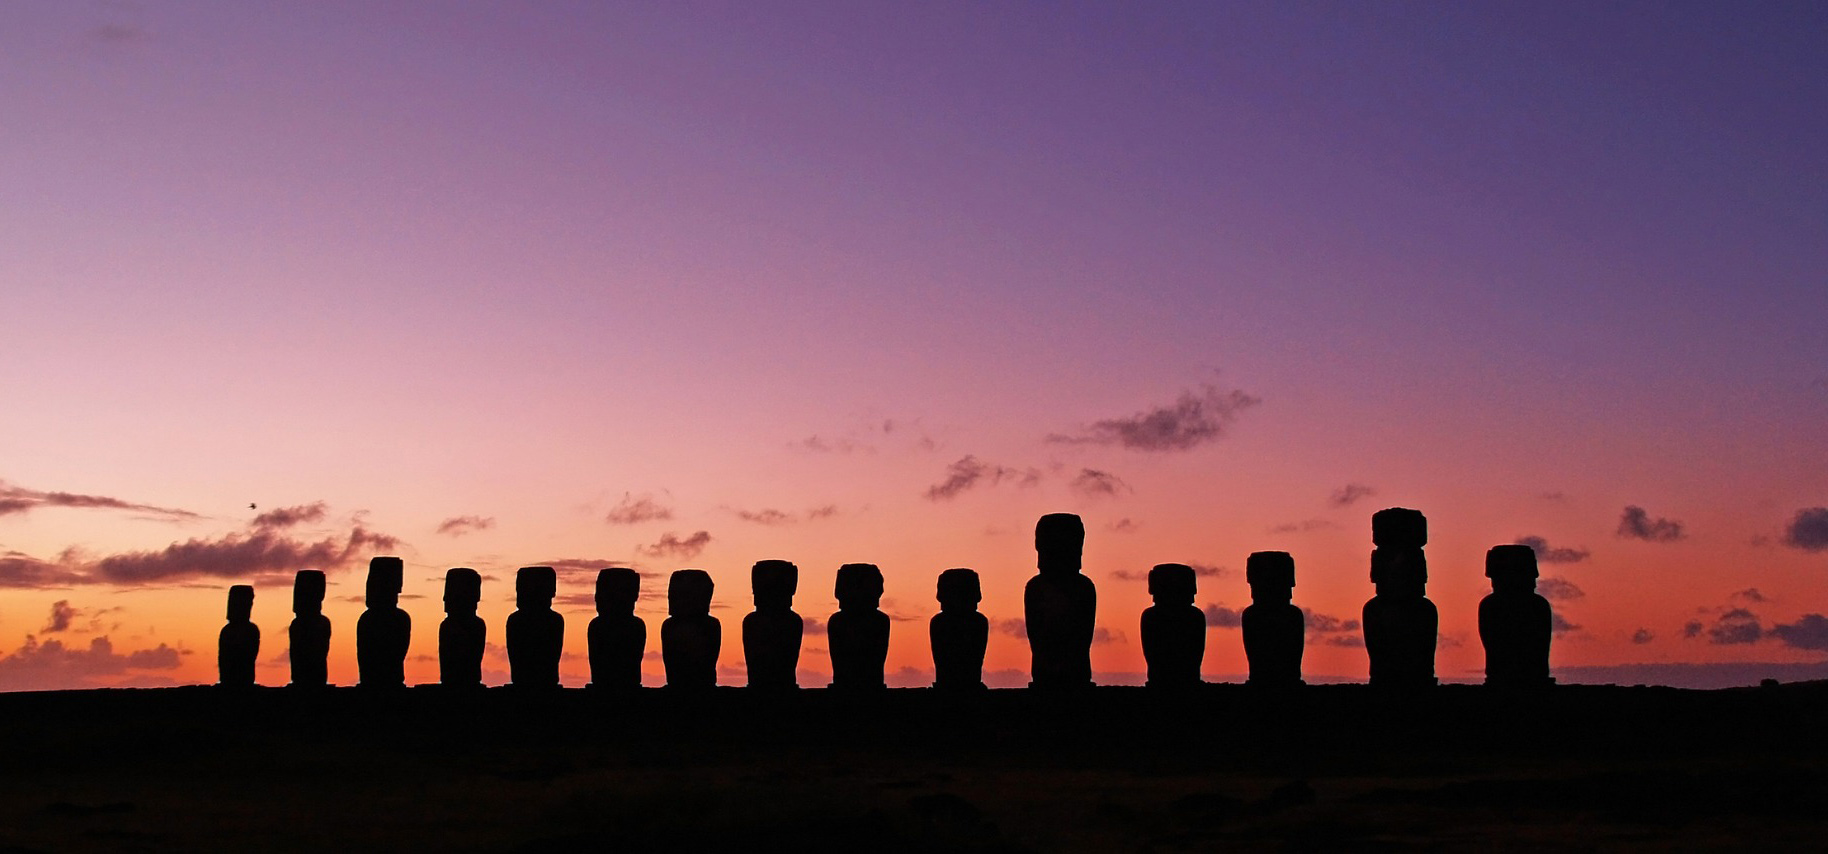 A sunset view on Chile's Easter Island with a line of the giant human-esque stone statues shown in silhouette in front of a purplish apricot-colored sky.